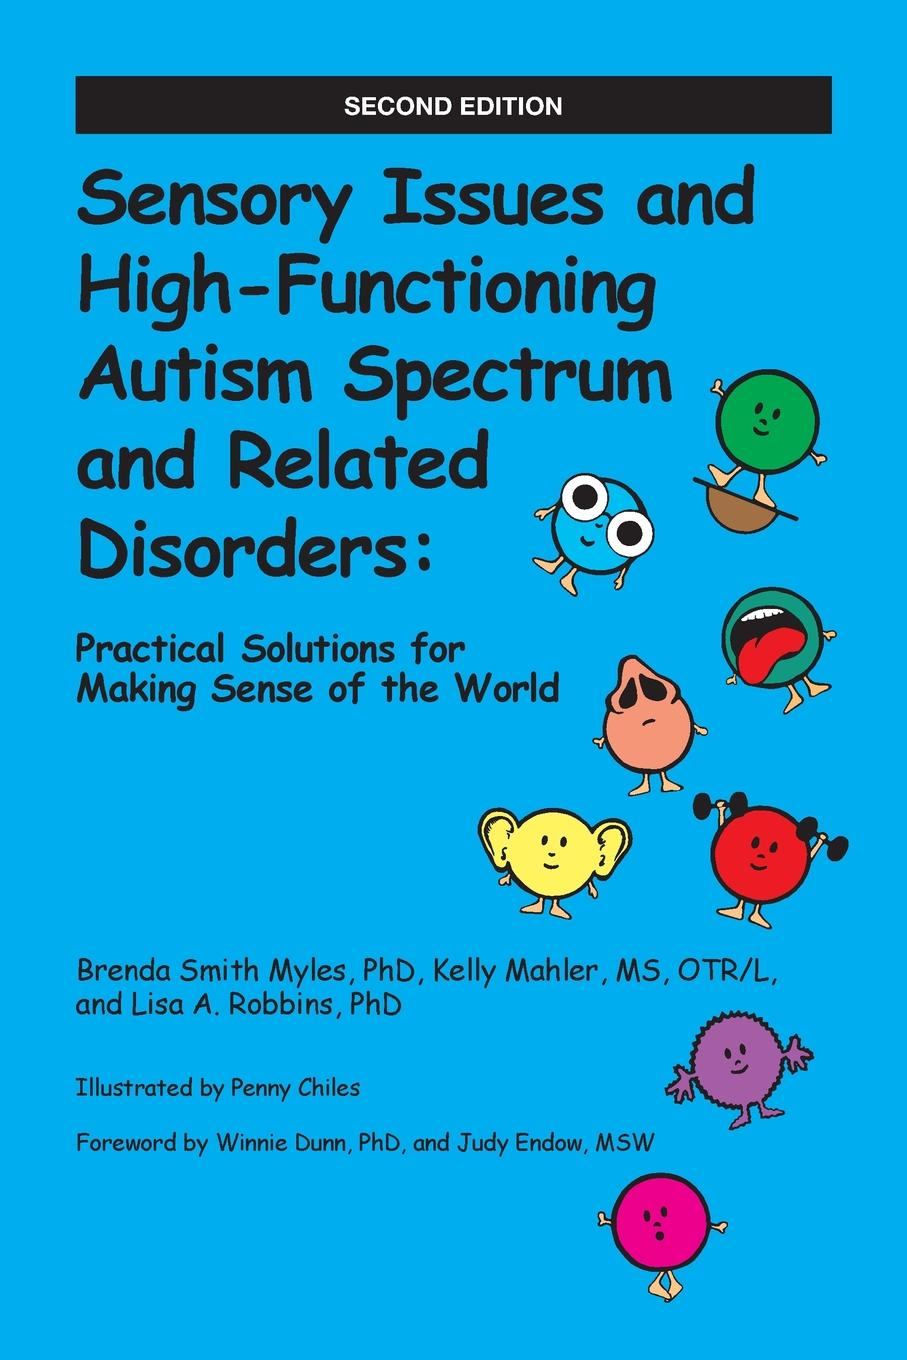 Brenda Ph.D. Smith Myles, Kelly Mahler, Lisa A. Robbins Sensory Issues and High-Functioning Autism Spectrum and Related Disorders. Practical Solutions for Making Sense of the World ventola pamela e essentials of autism spectrum disorders evaluation and assessment